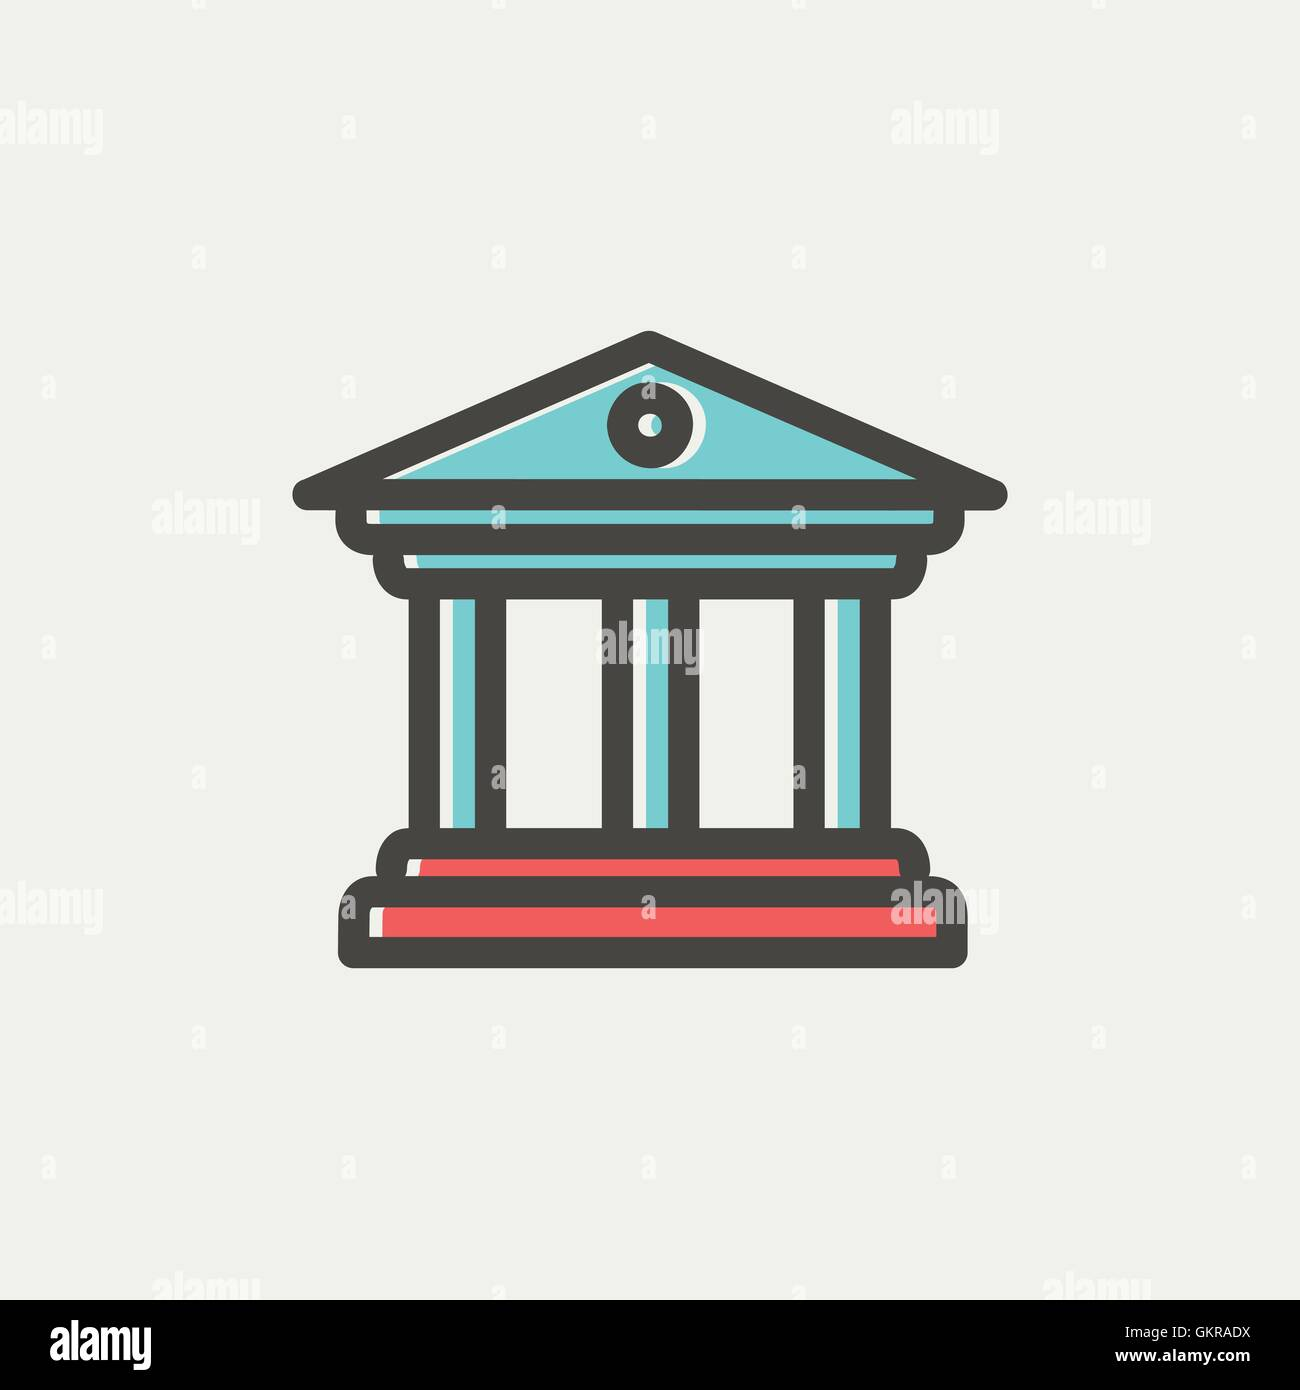 Museum building thin line icon - Stock Vector